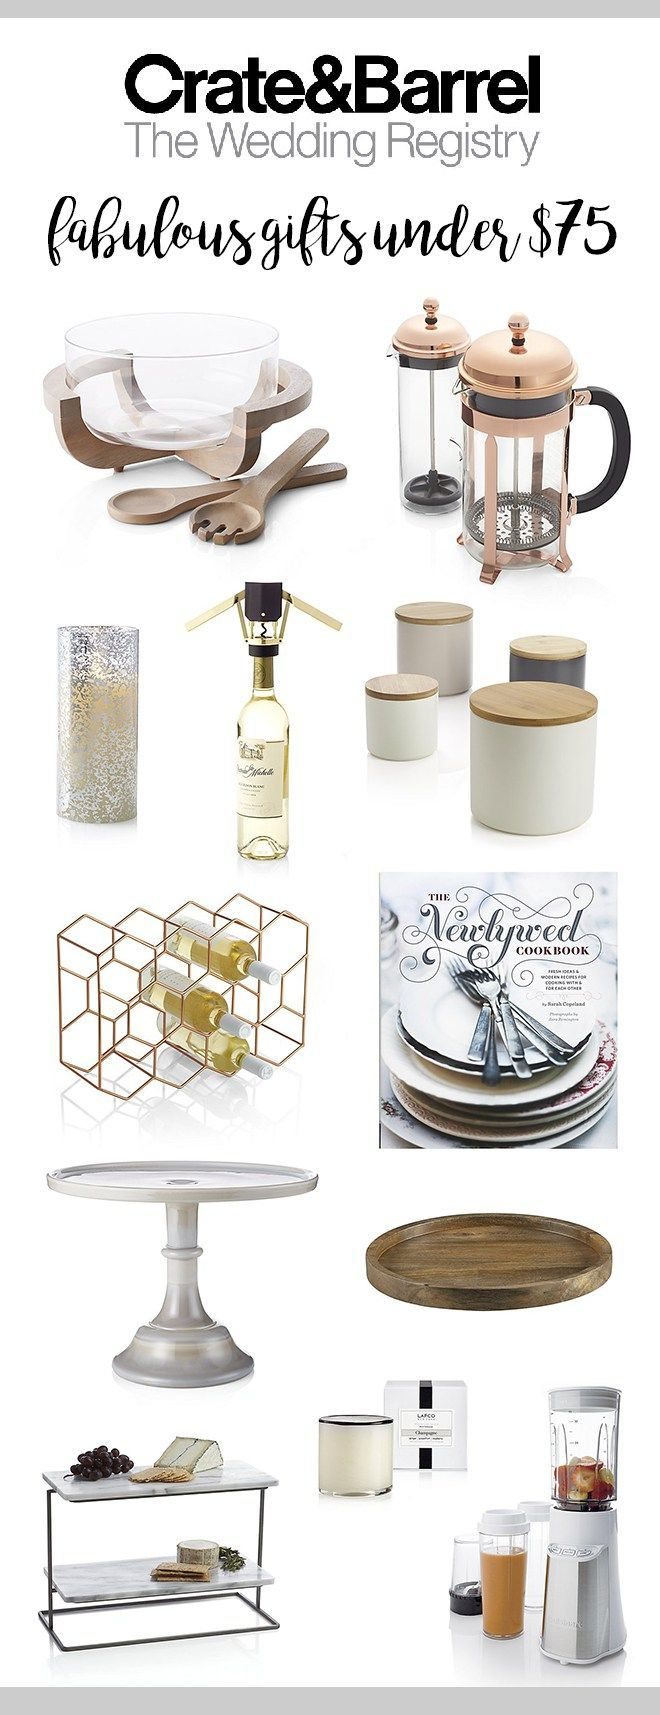 Top Crate & Barrel Registry Picks By Price, 25, 75, and